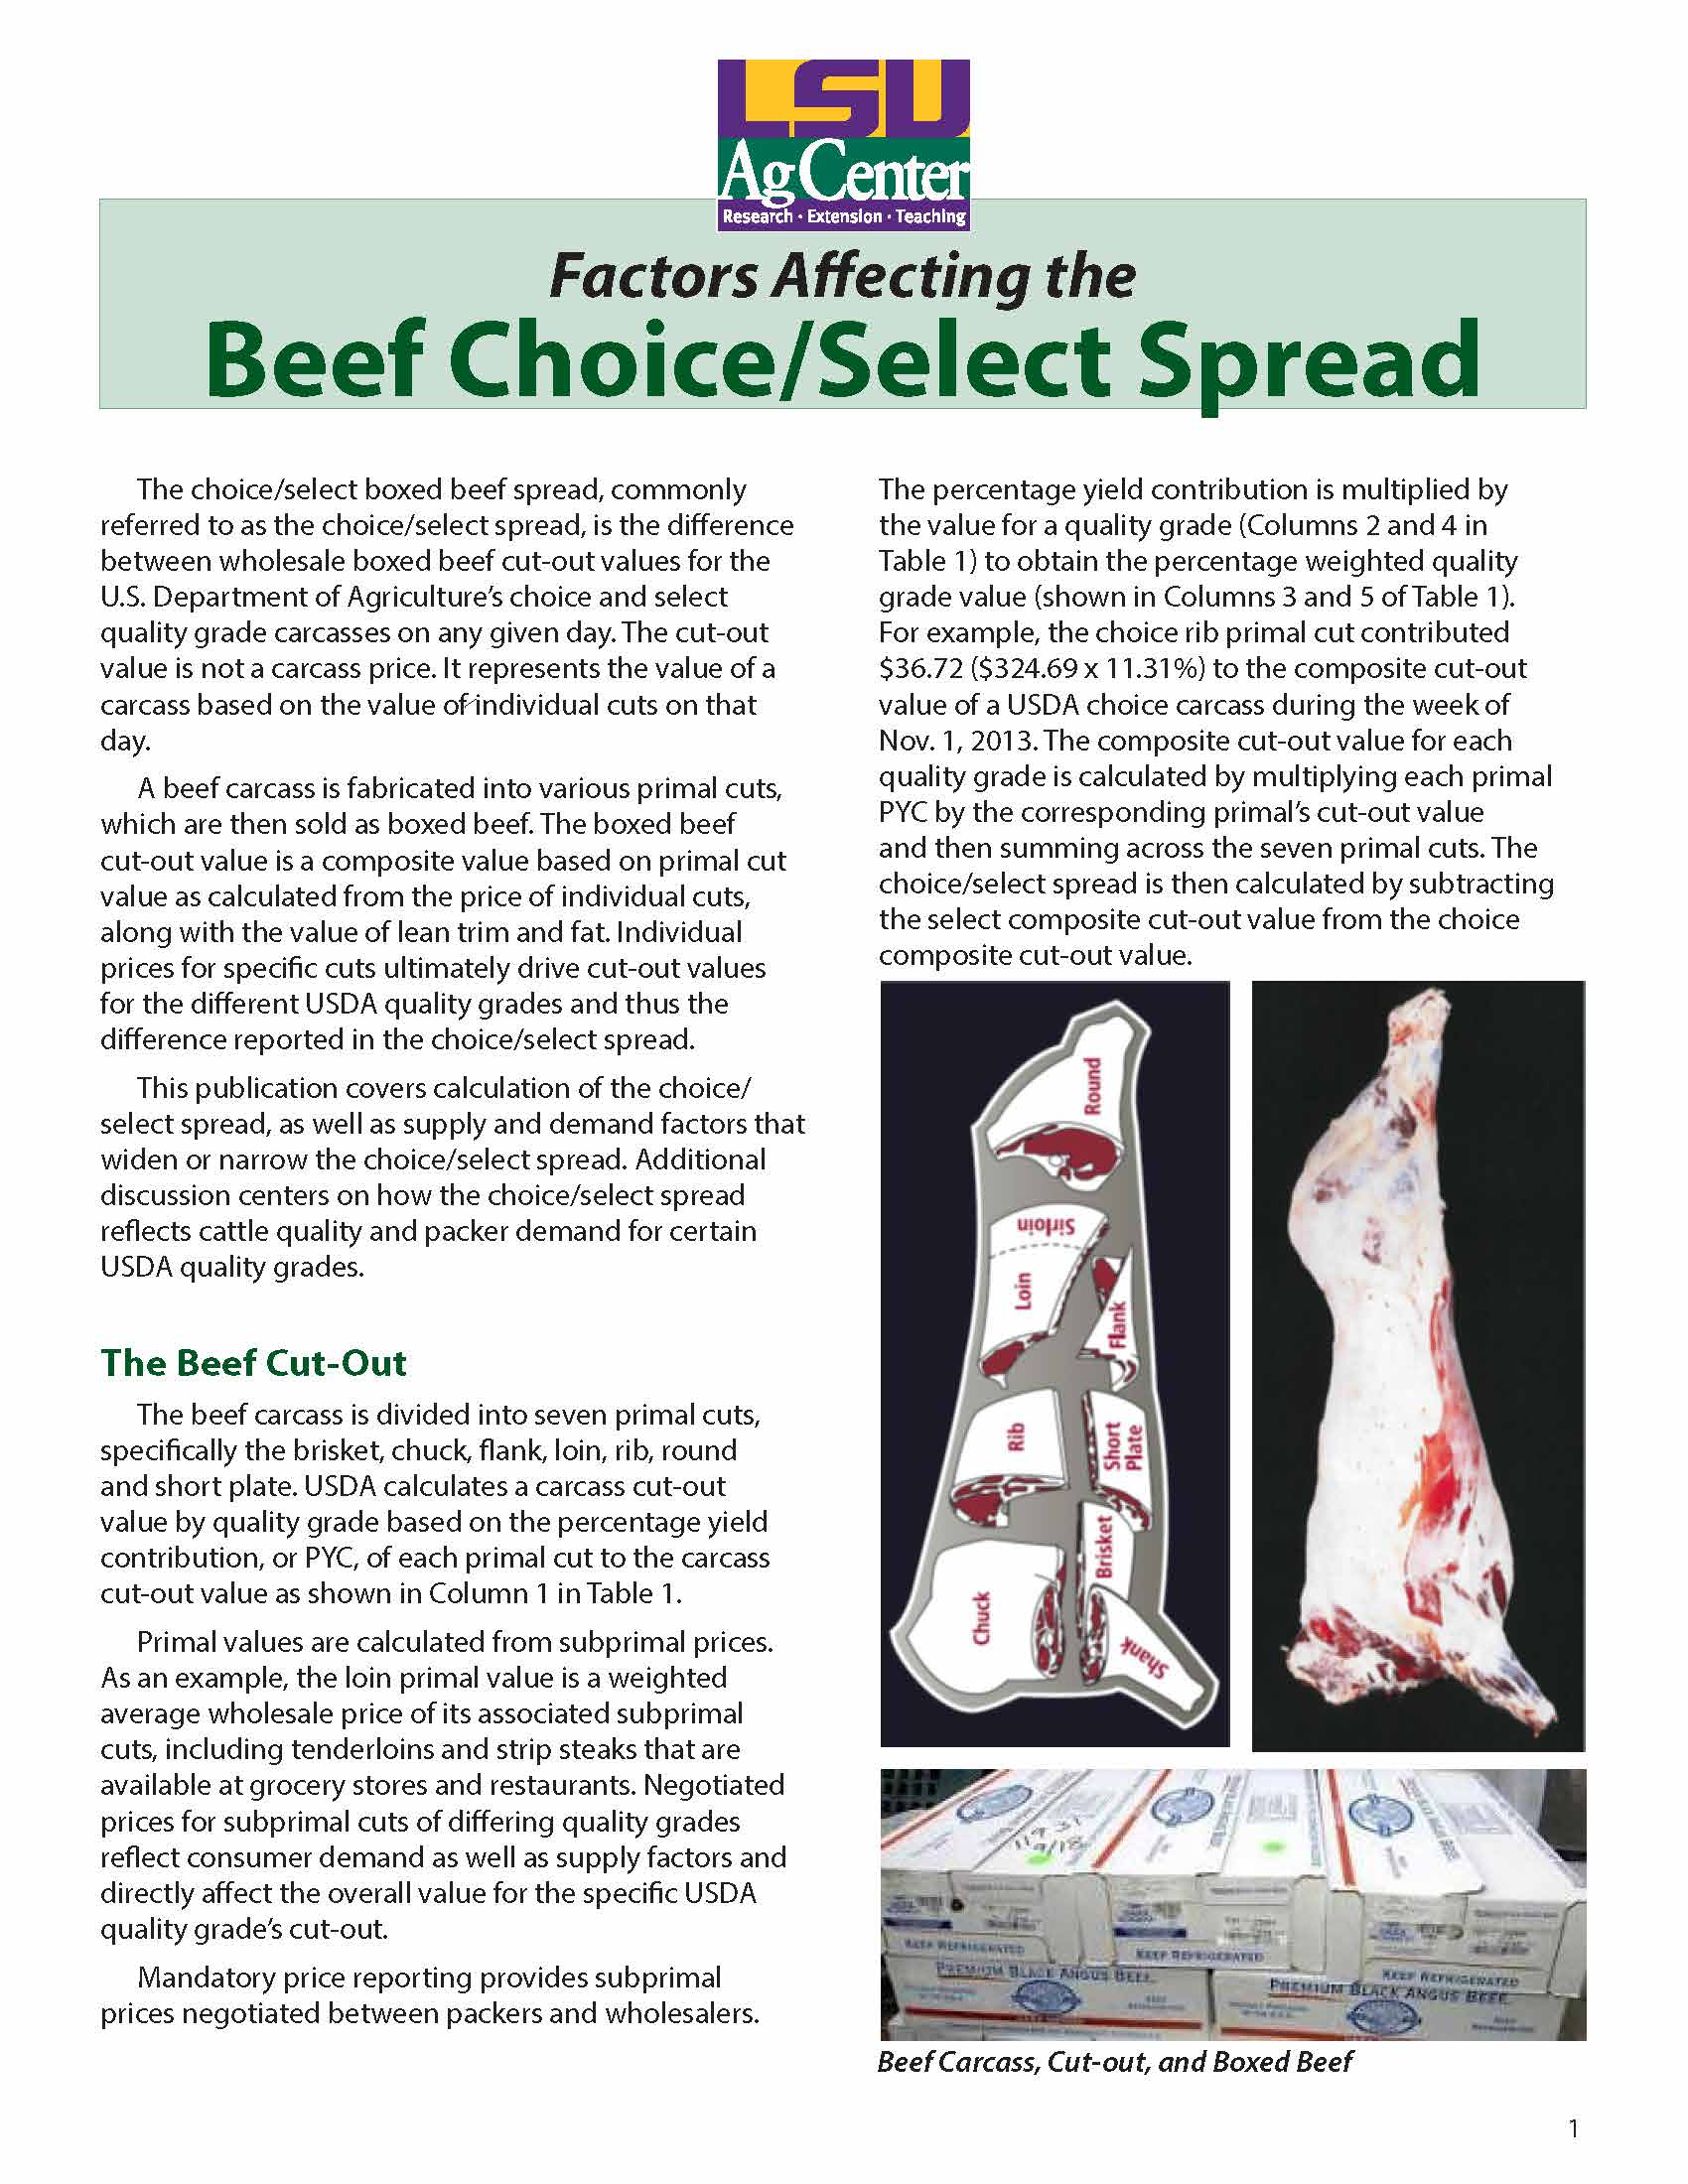 Factors Affecting the Beef Choice/Select Spread